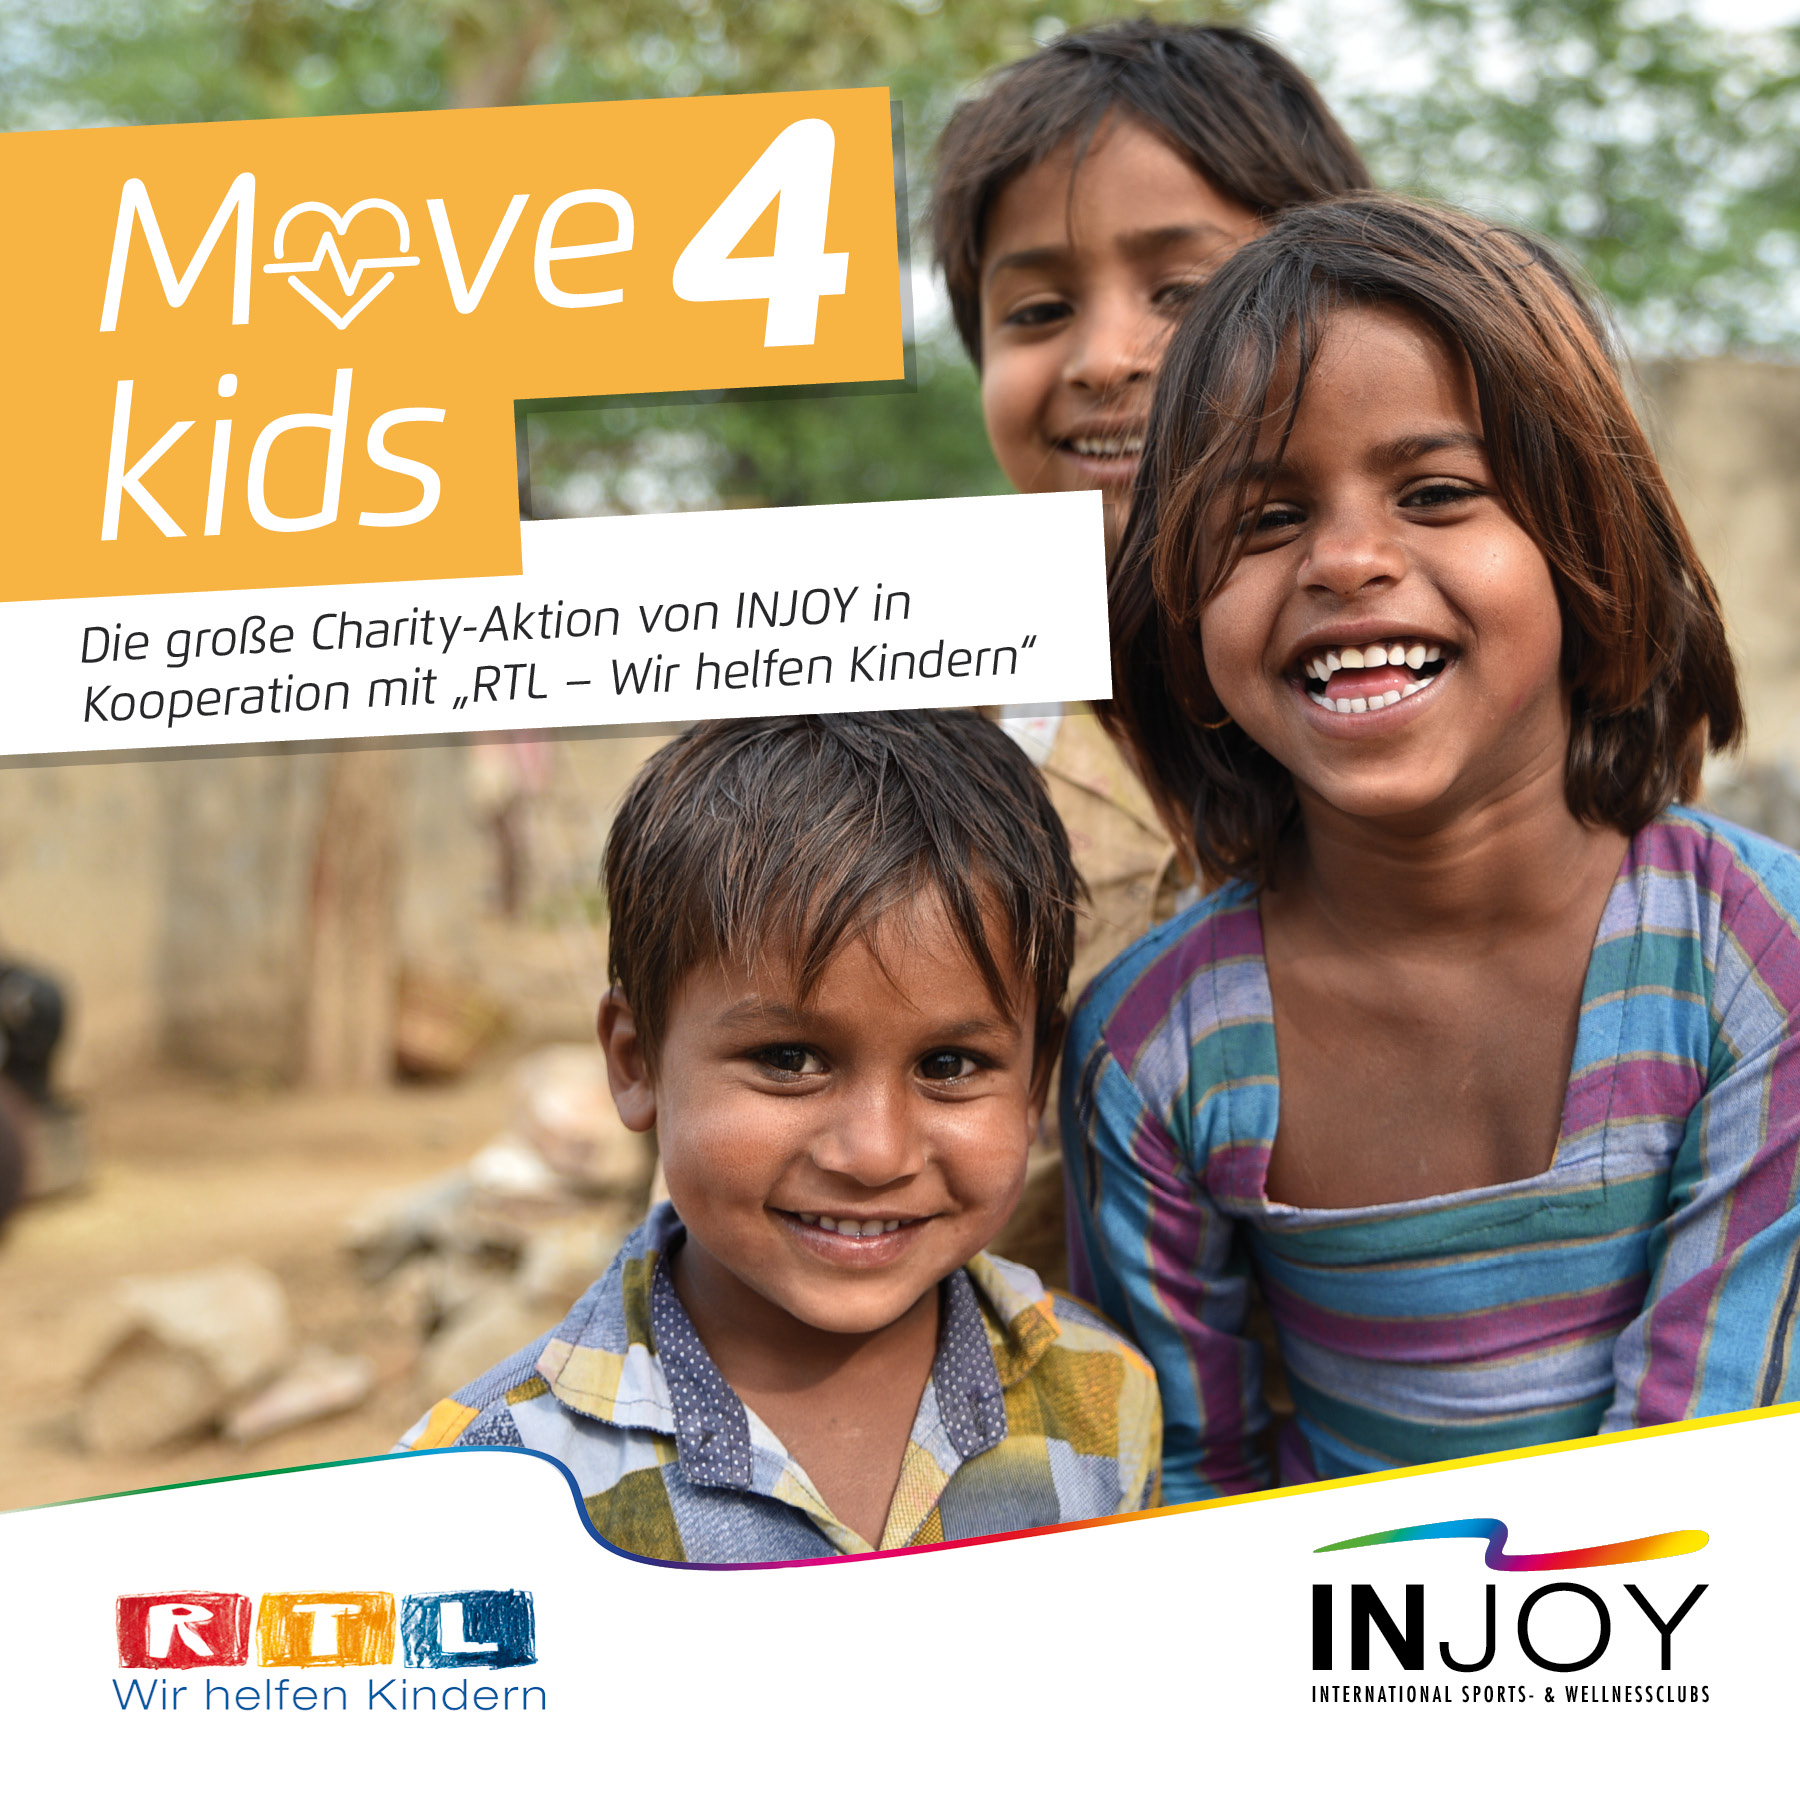 move4kids_injoy2